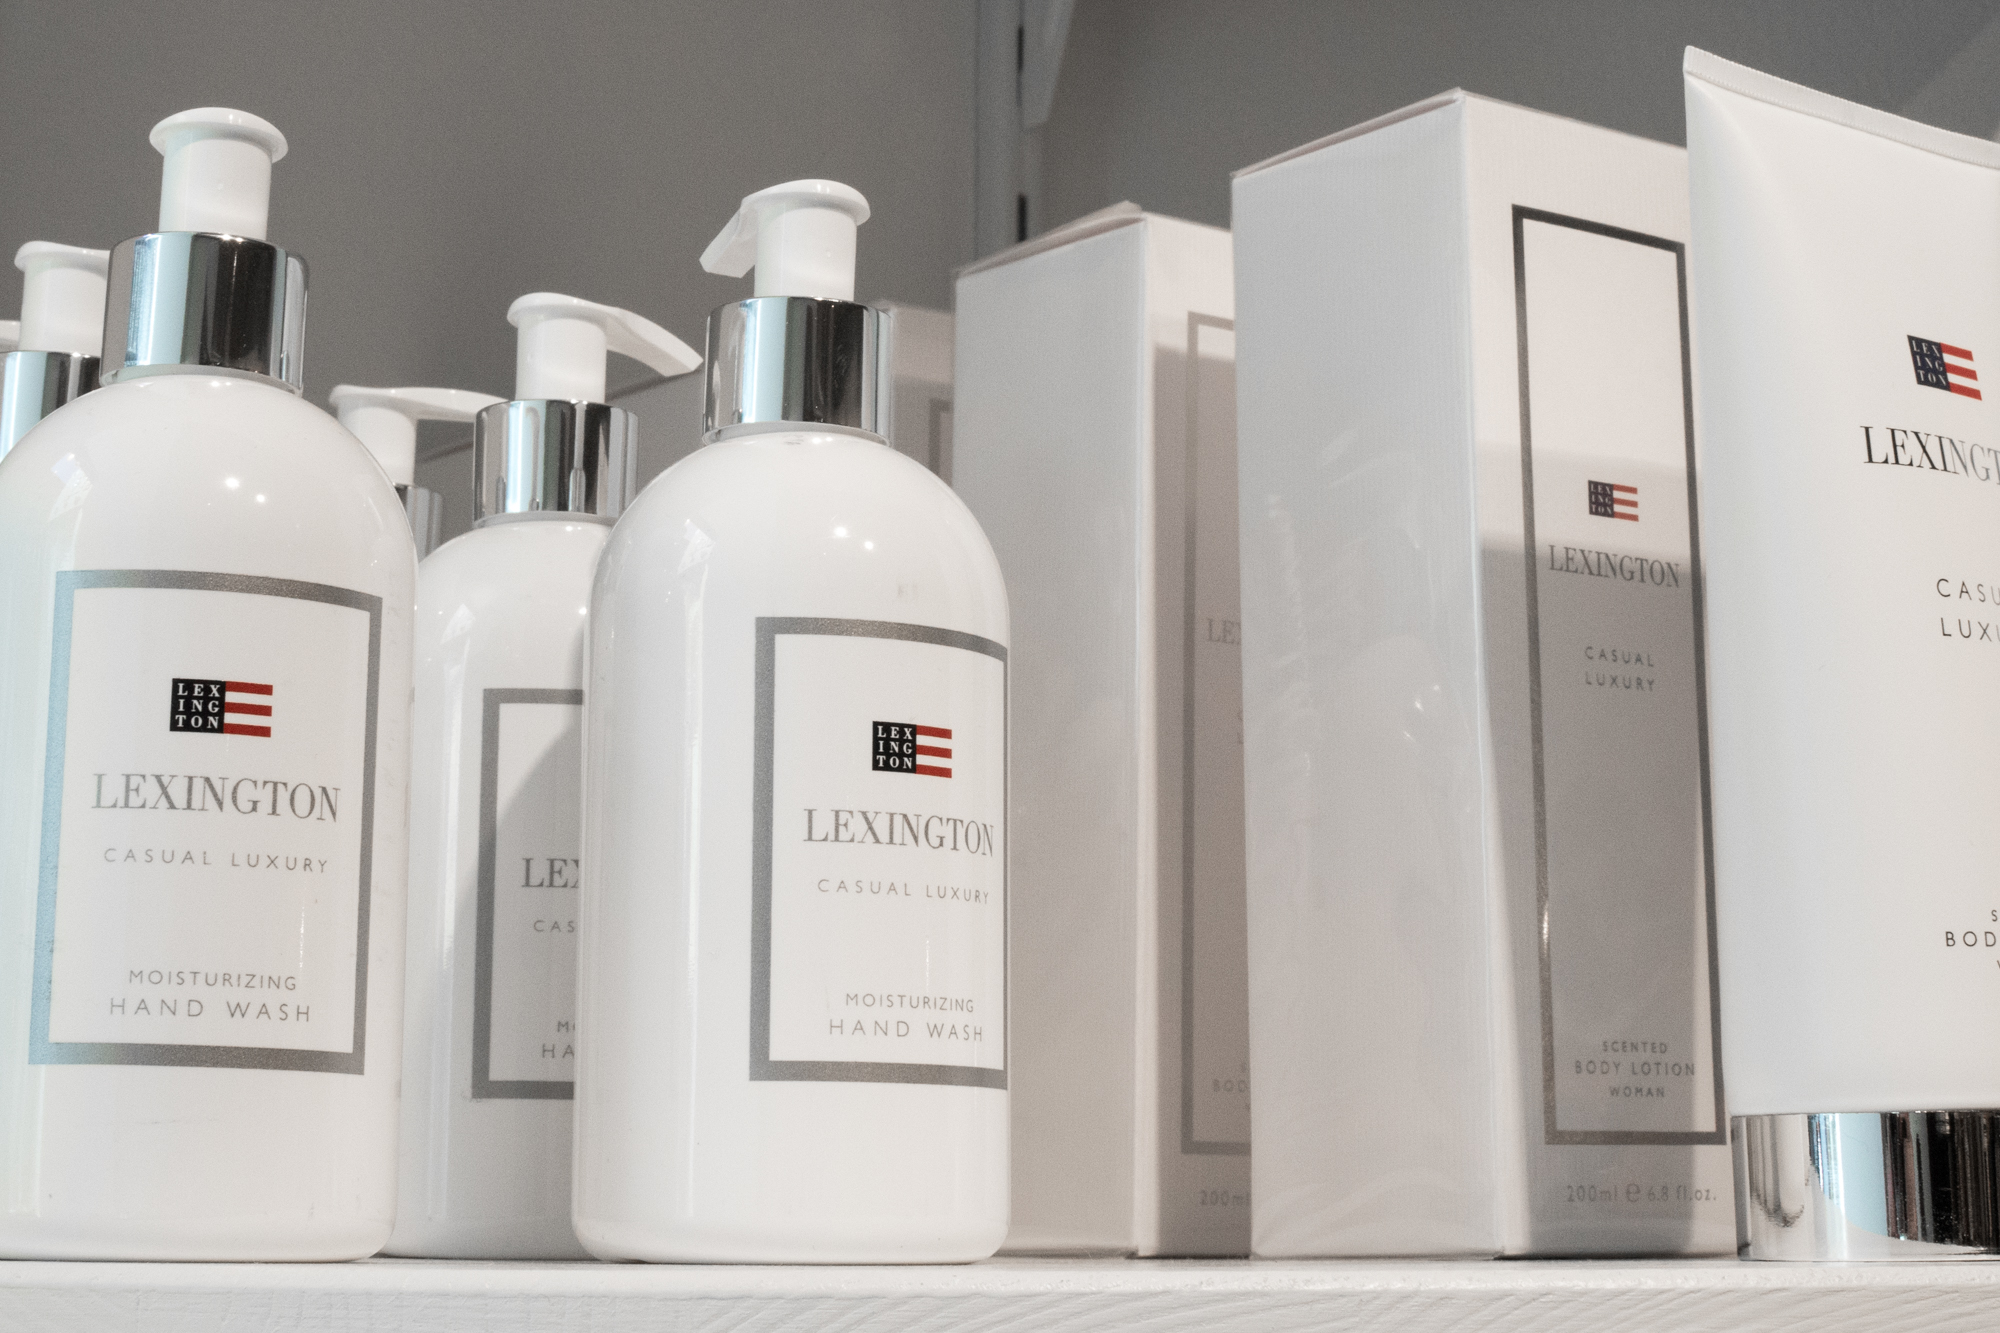 Lexington Casual Luxury | Two Drops Of Water